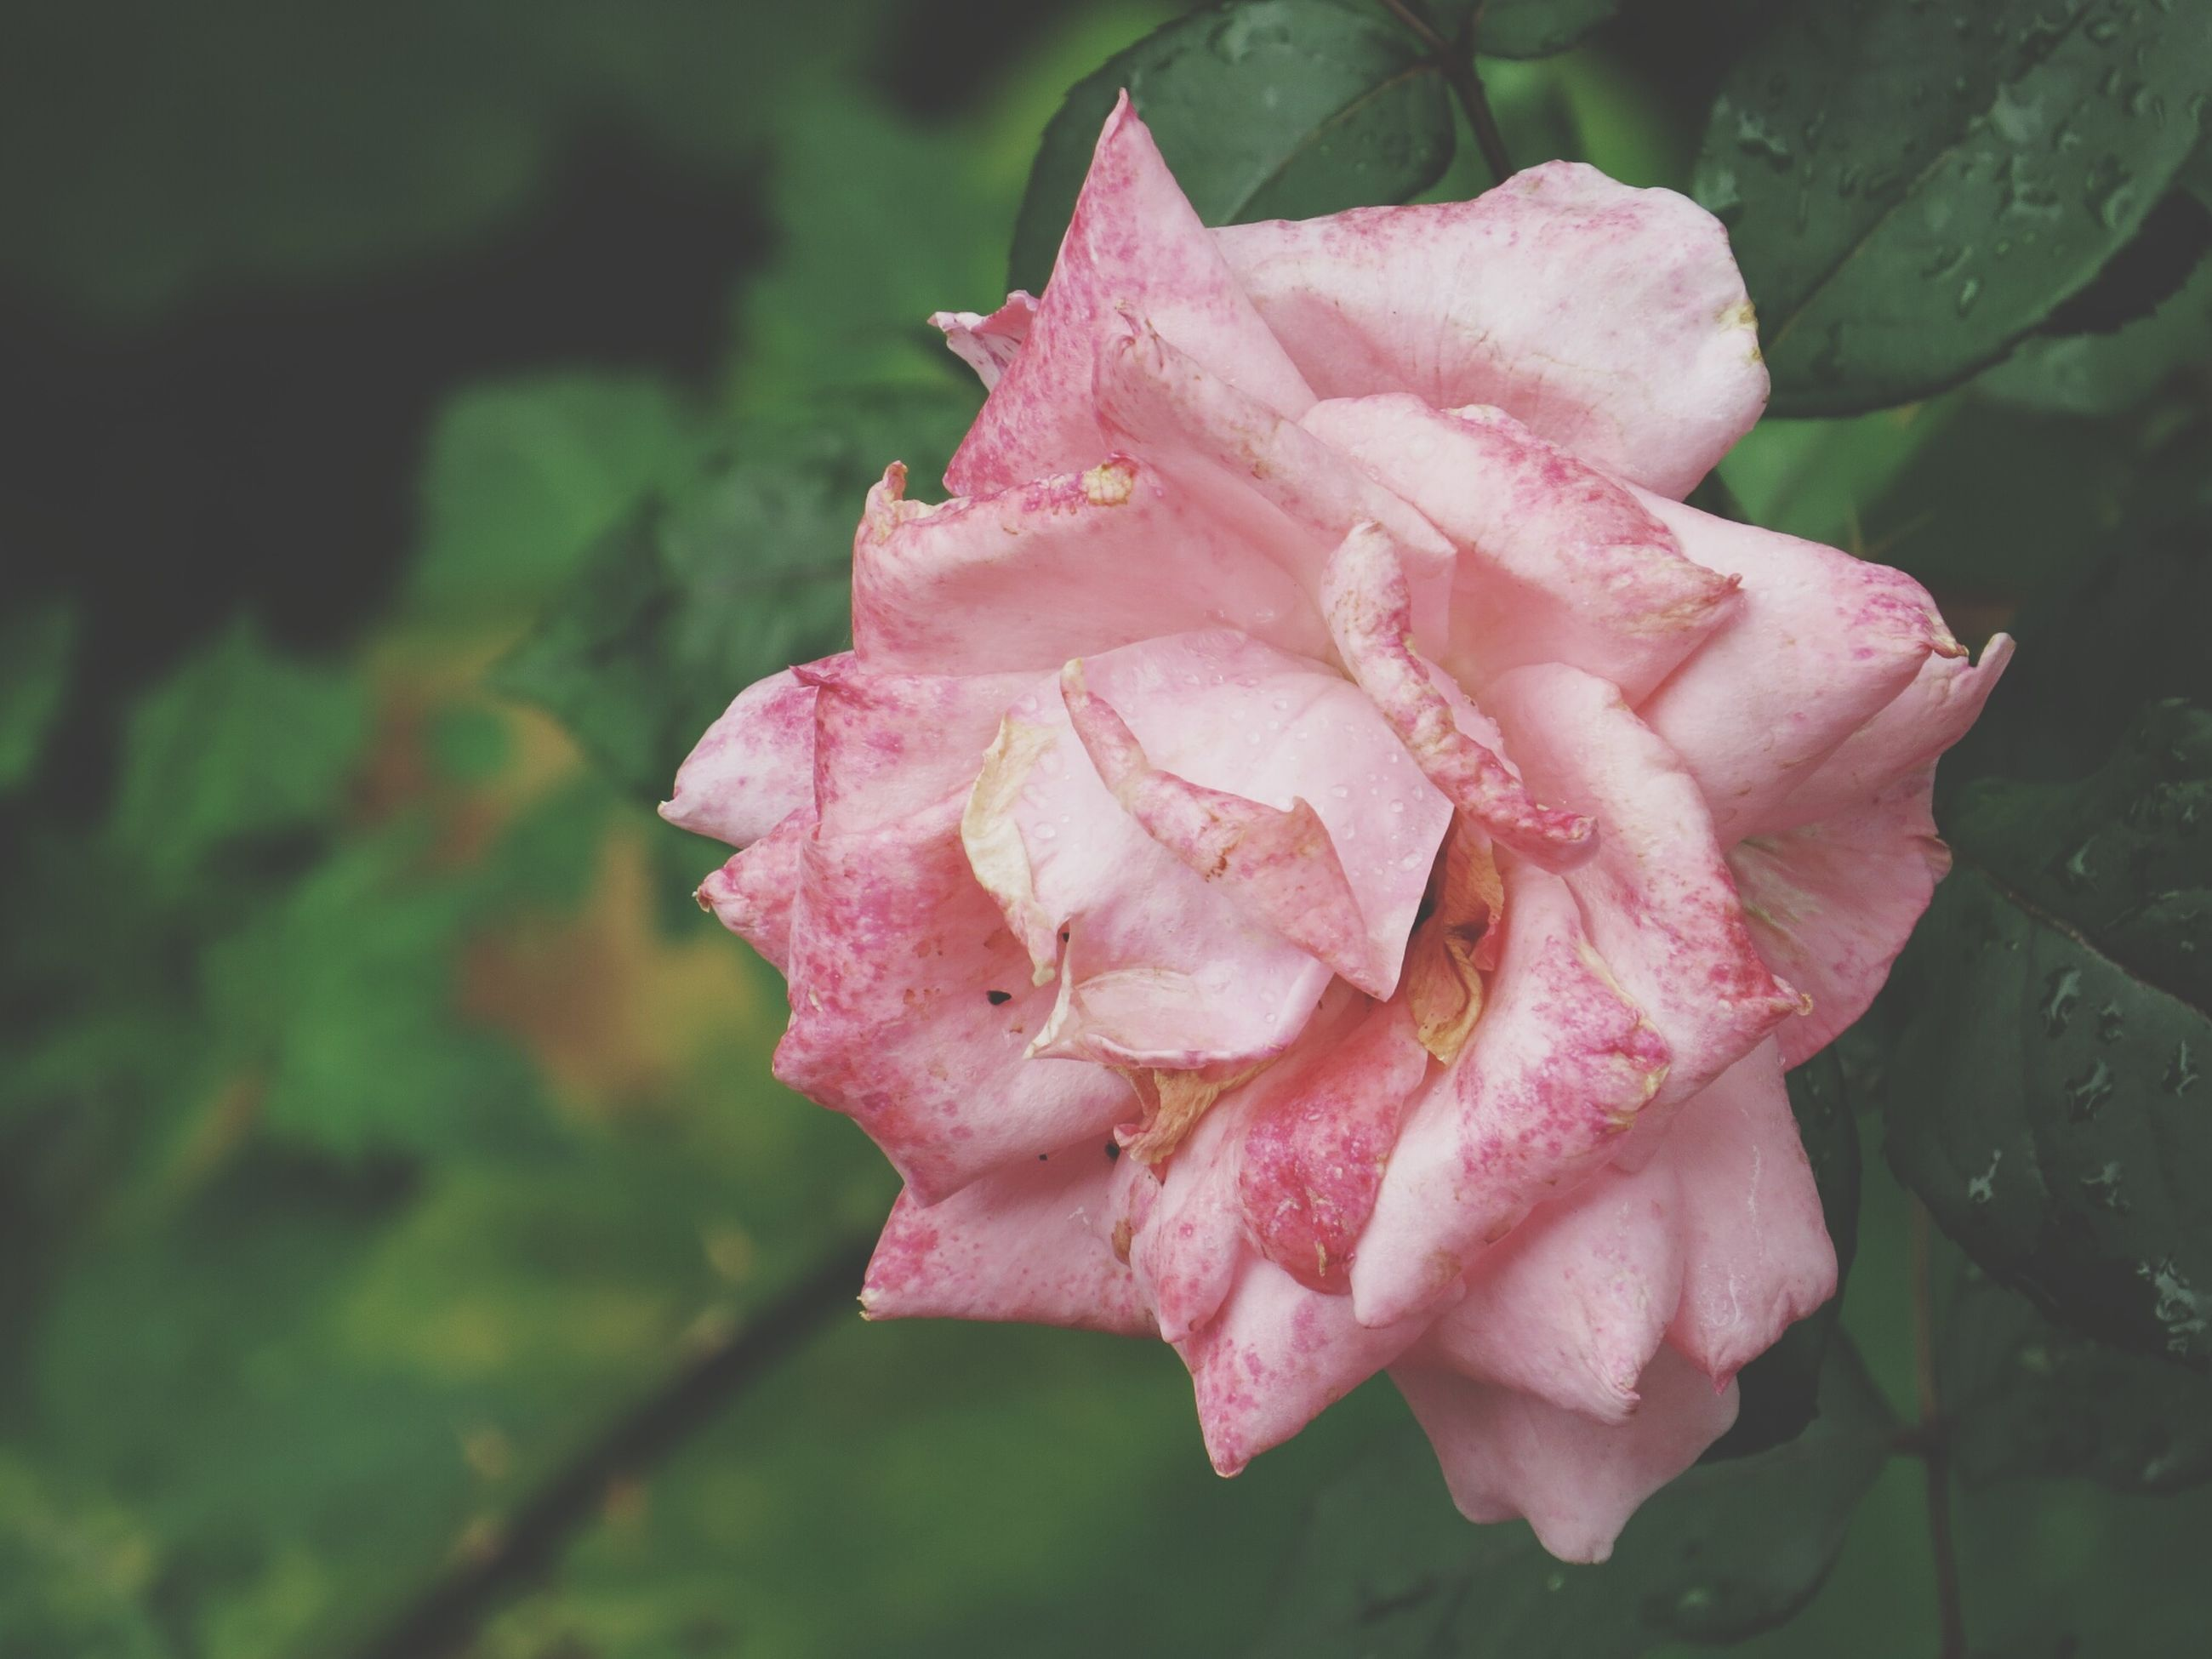 flower, petal, freshness, fragility, flower head, rose - flower, close-up, growth, beauty in nature, single flower, focus on foreground, pink color, nature, drop, blooming, wet, plant, water, in bloom, rose